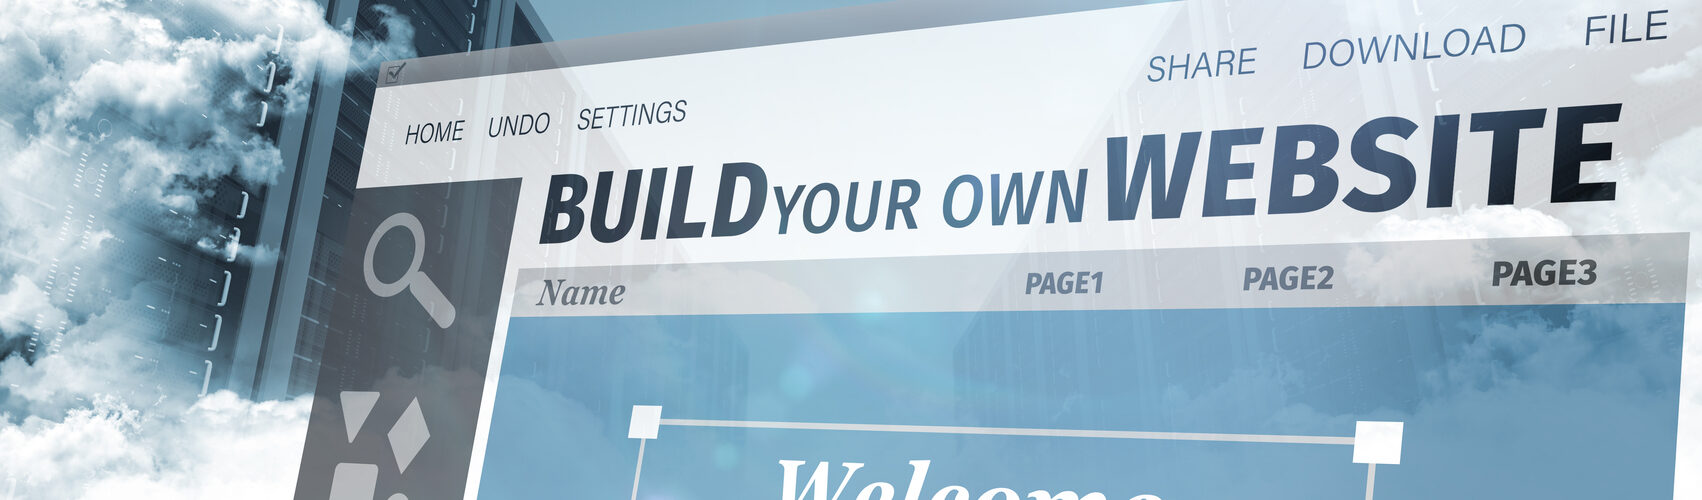 Building a Website is Easy! Here's How: